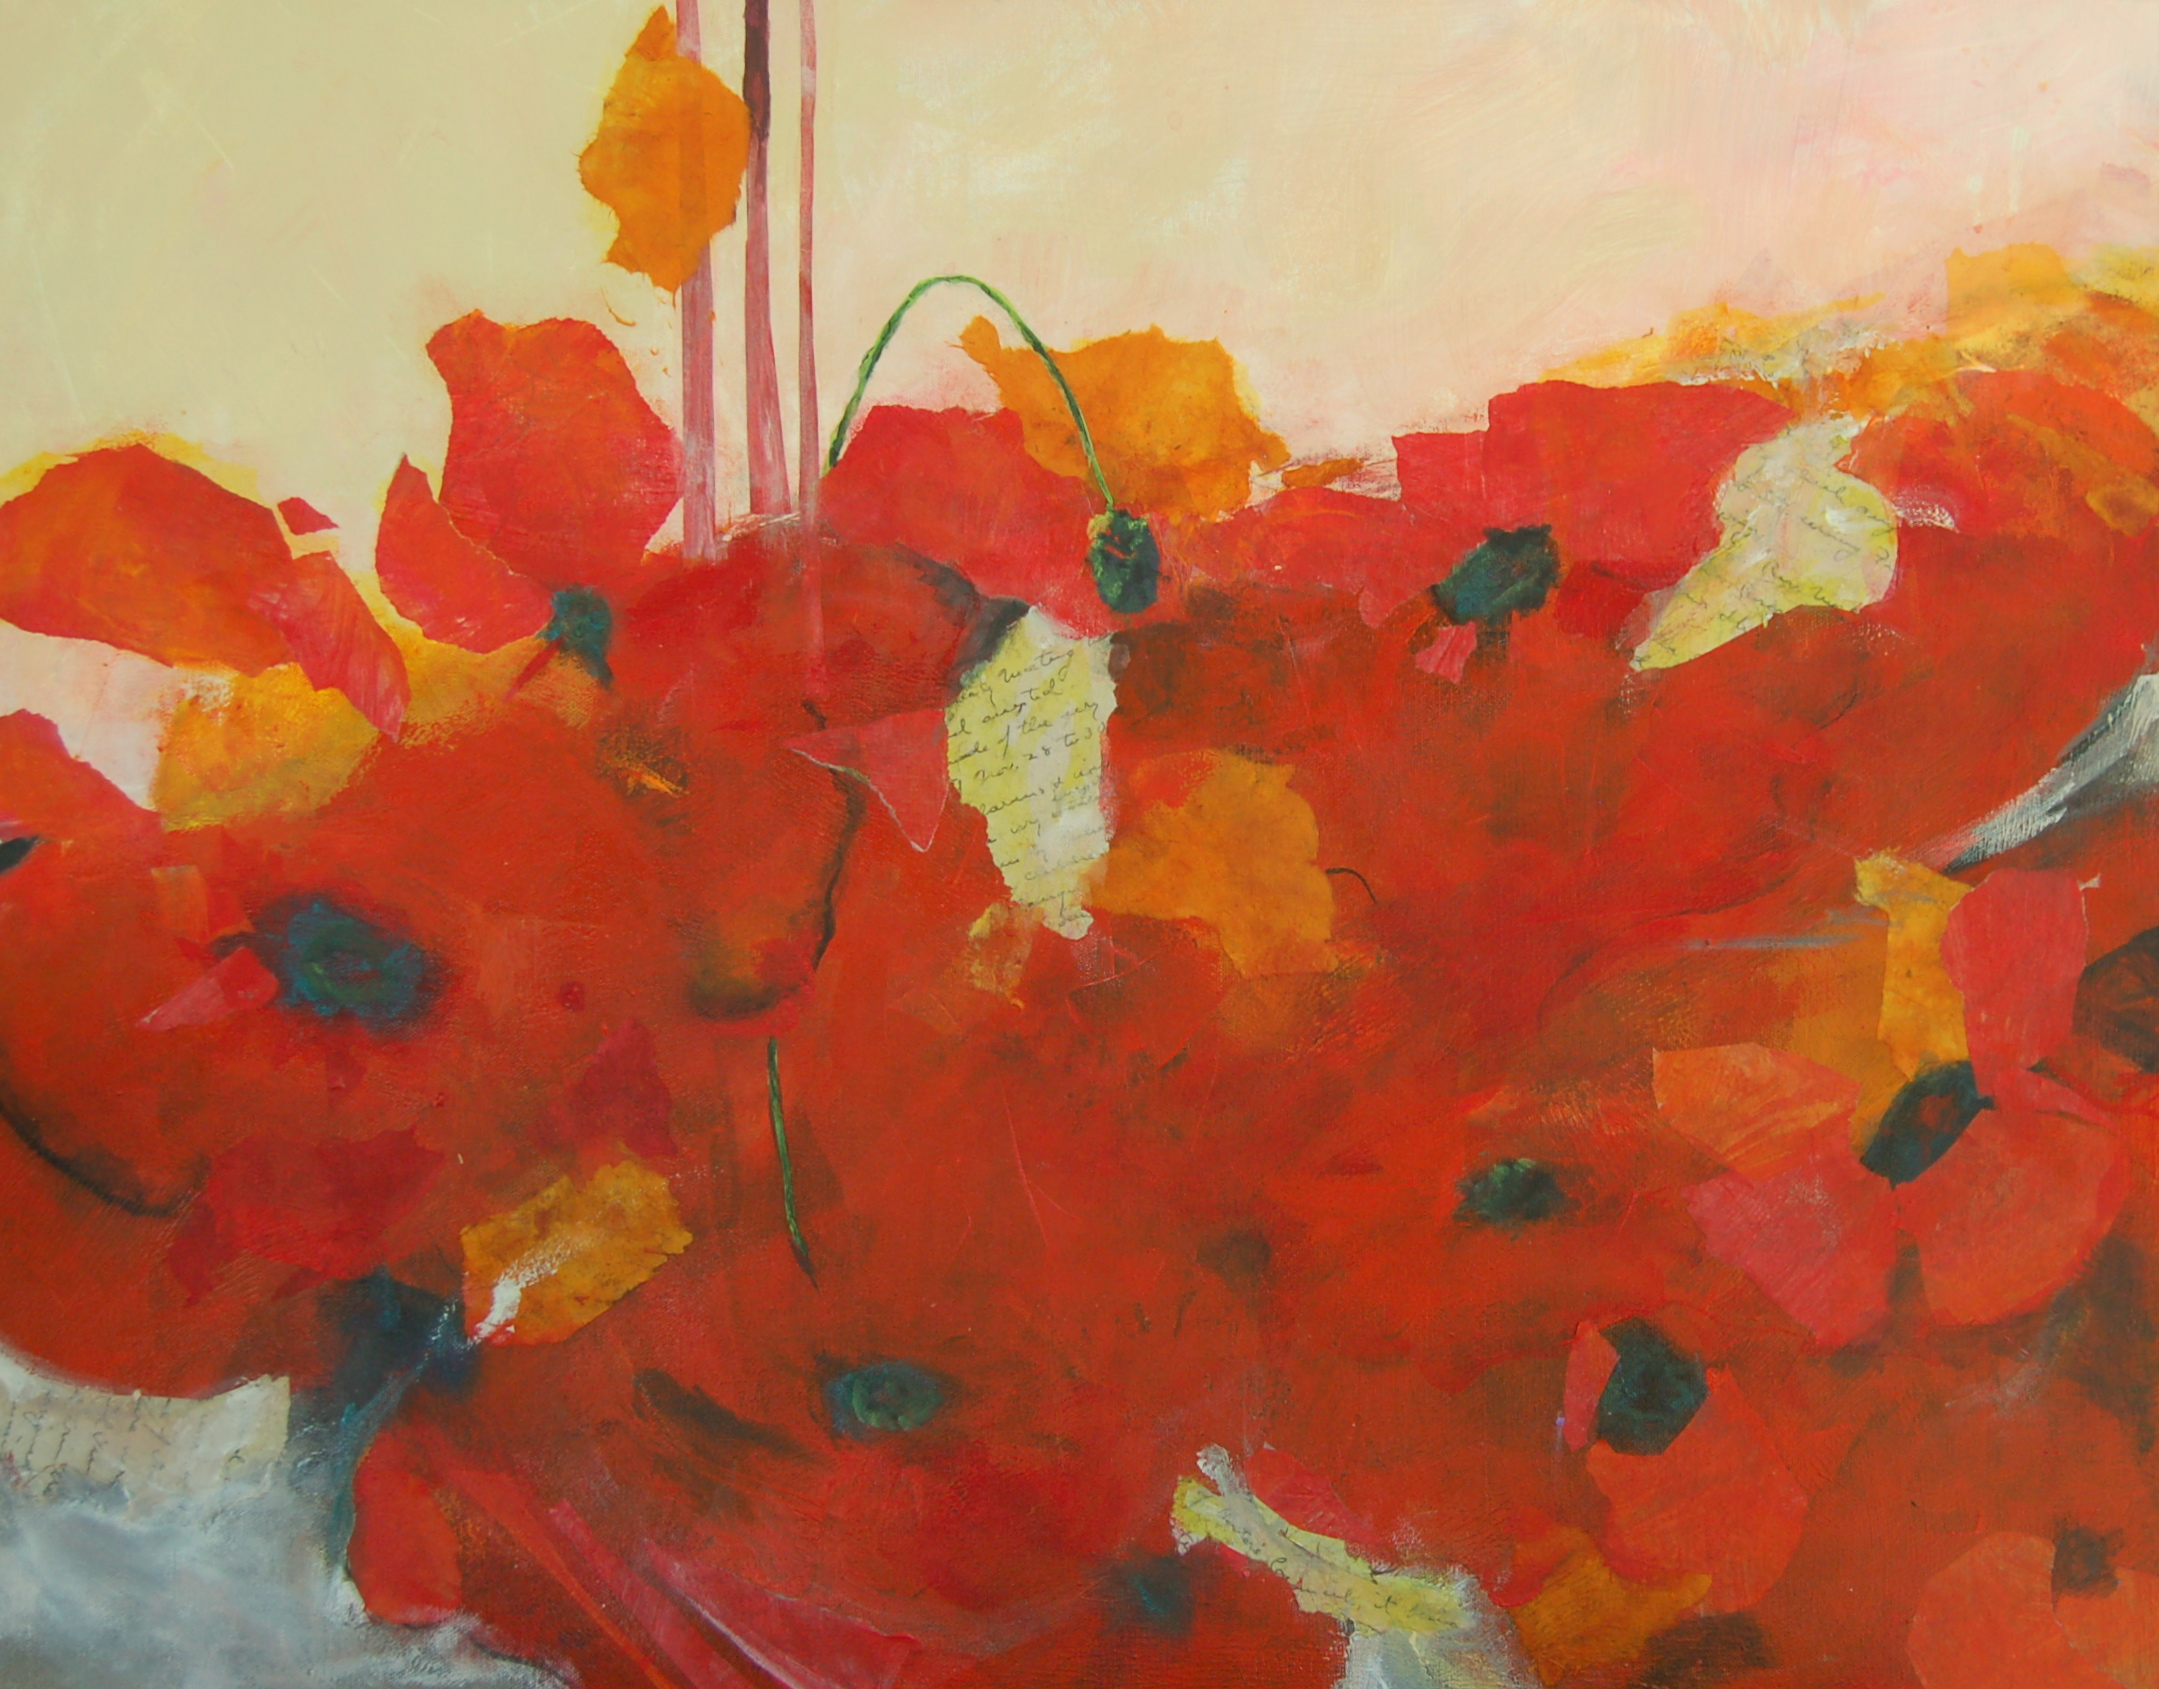 abstarct acrylic painting of poppies with some collage